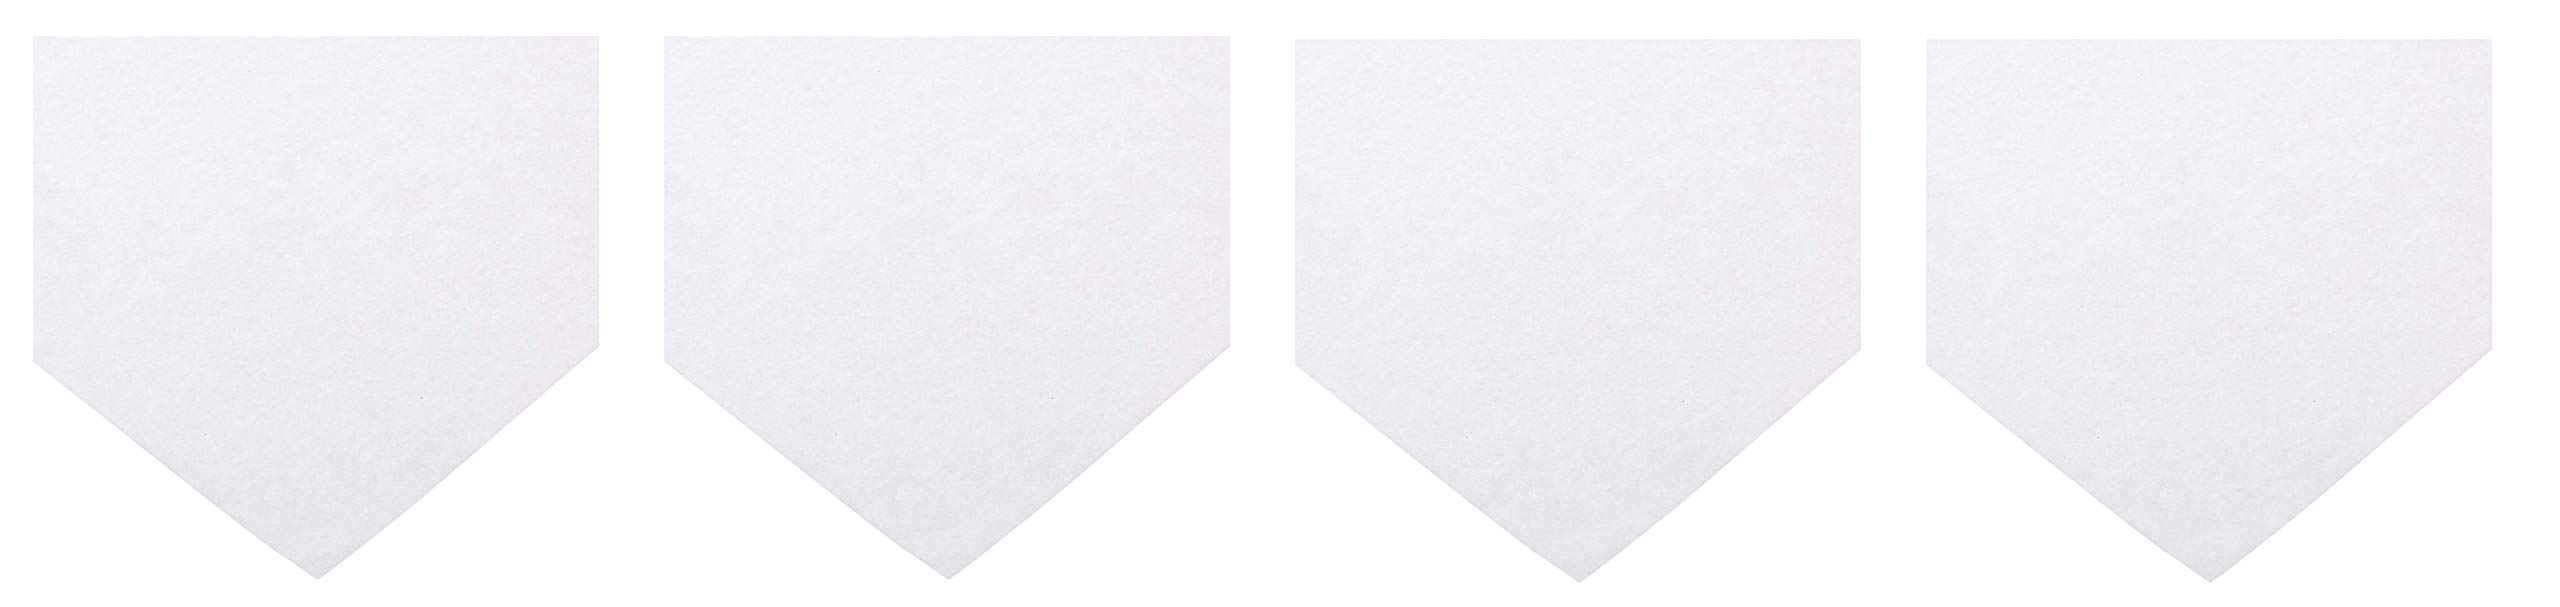 Sax Sulphite Drawing Paper, 90 lb, 9 x 12 Inches, Extra-White, Pack of 500 (4-Pack) by Sax